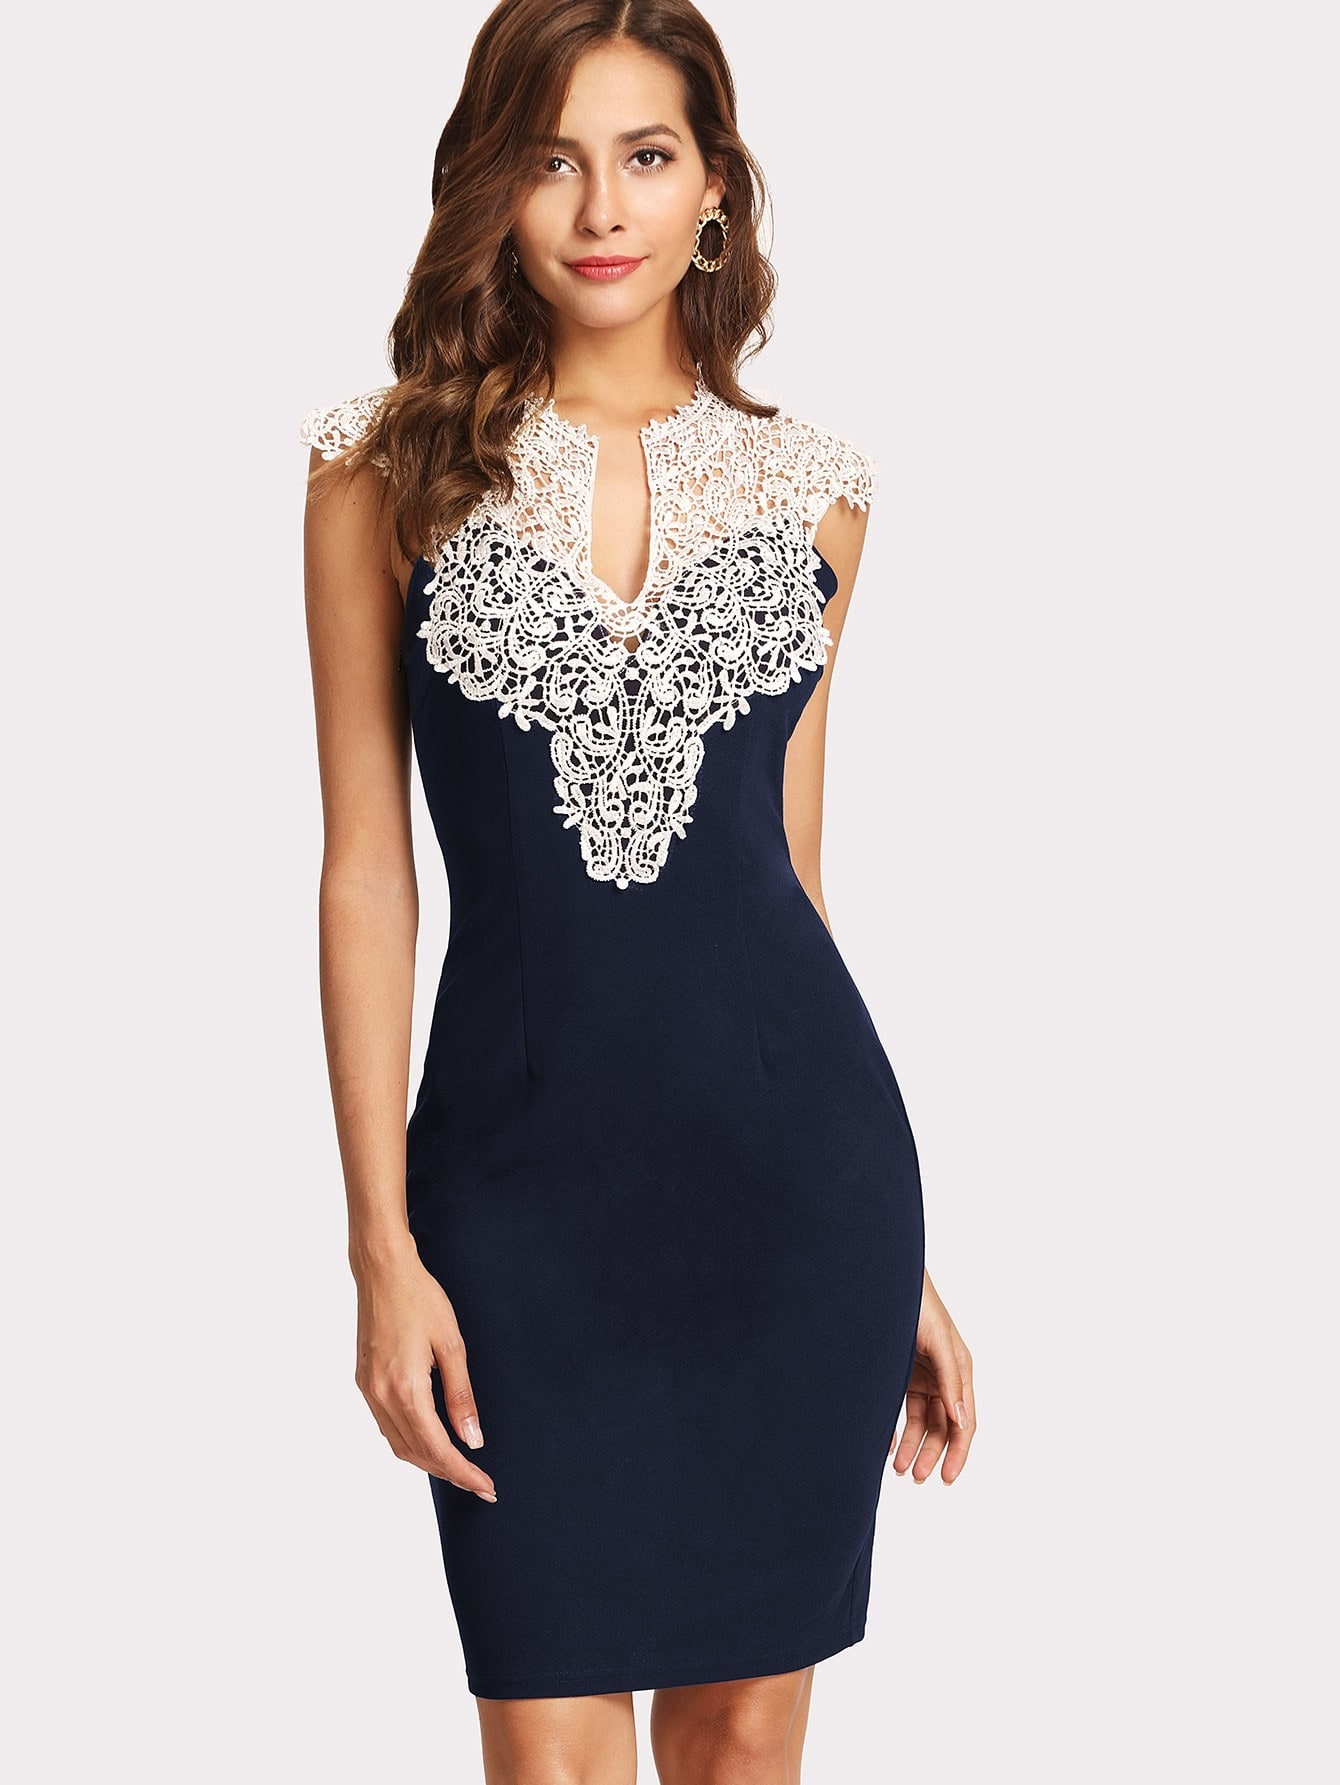 Floral Lace Yoke Form Fitting Dress guipure lace form fitting dress